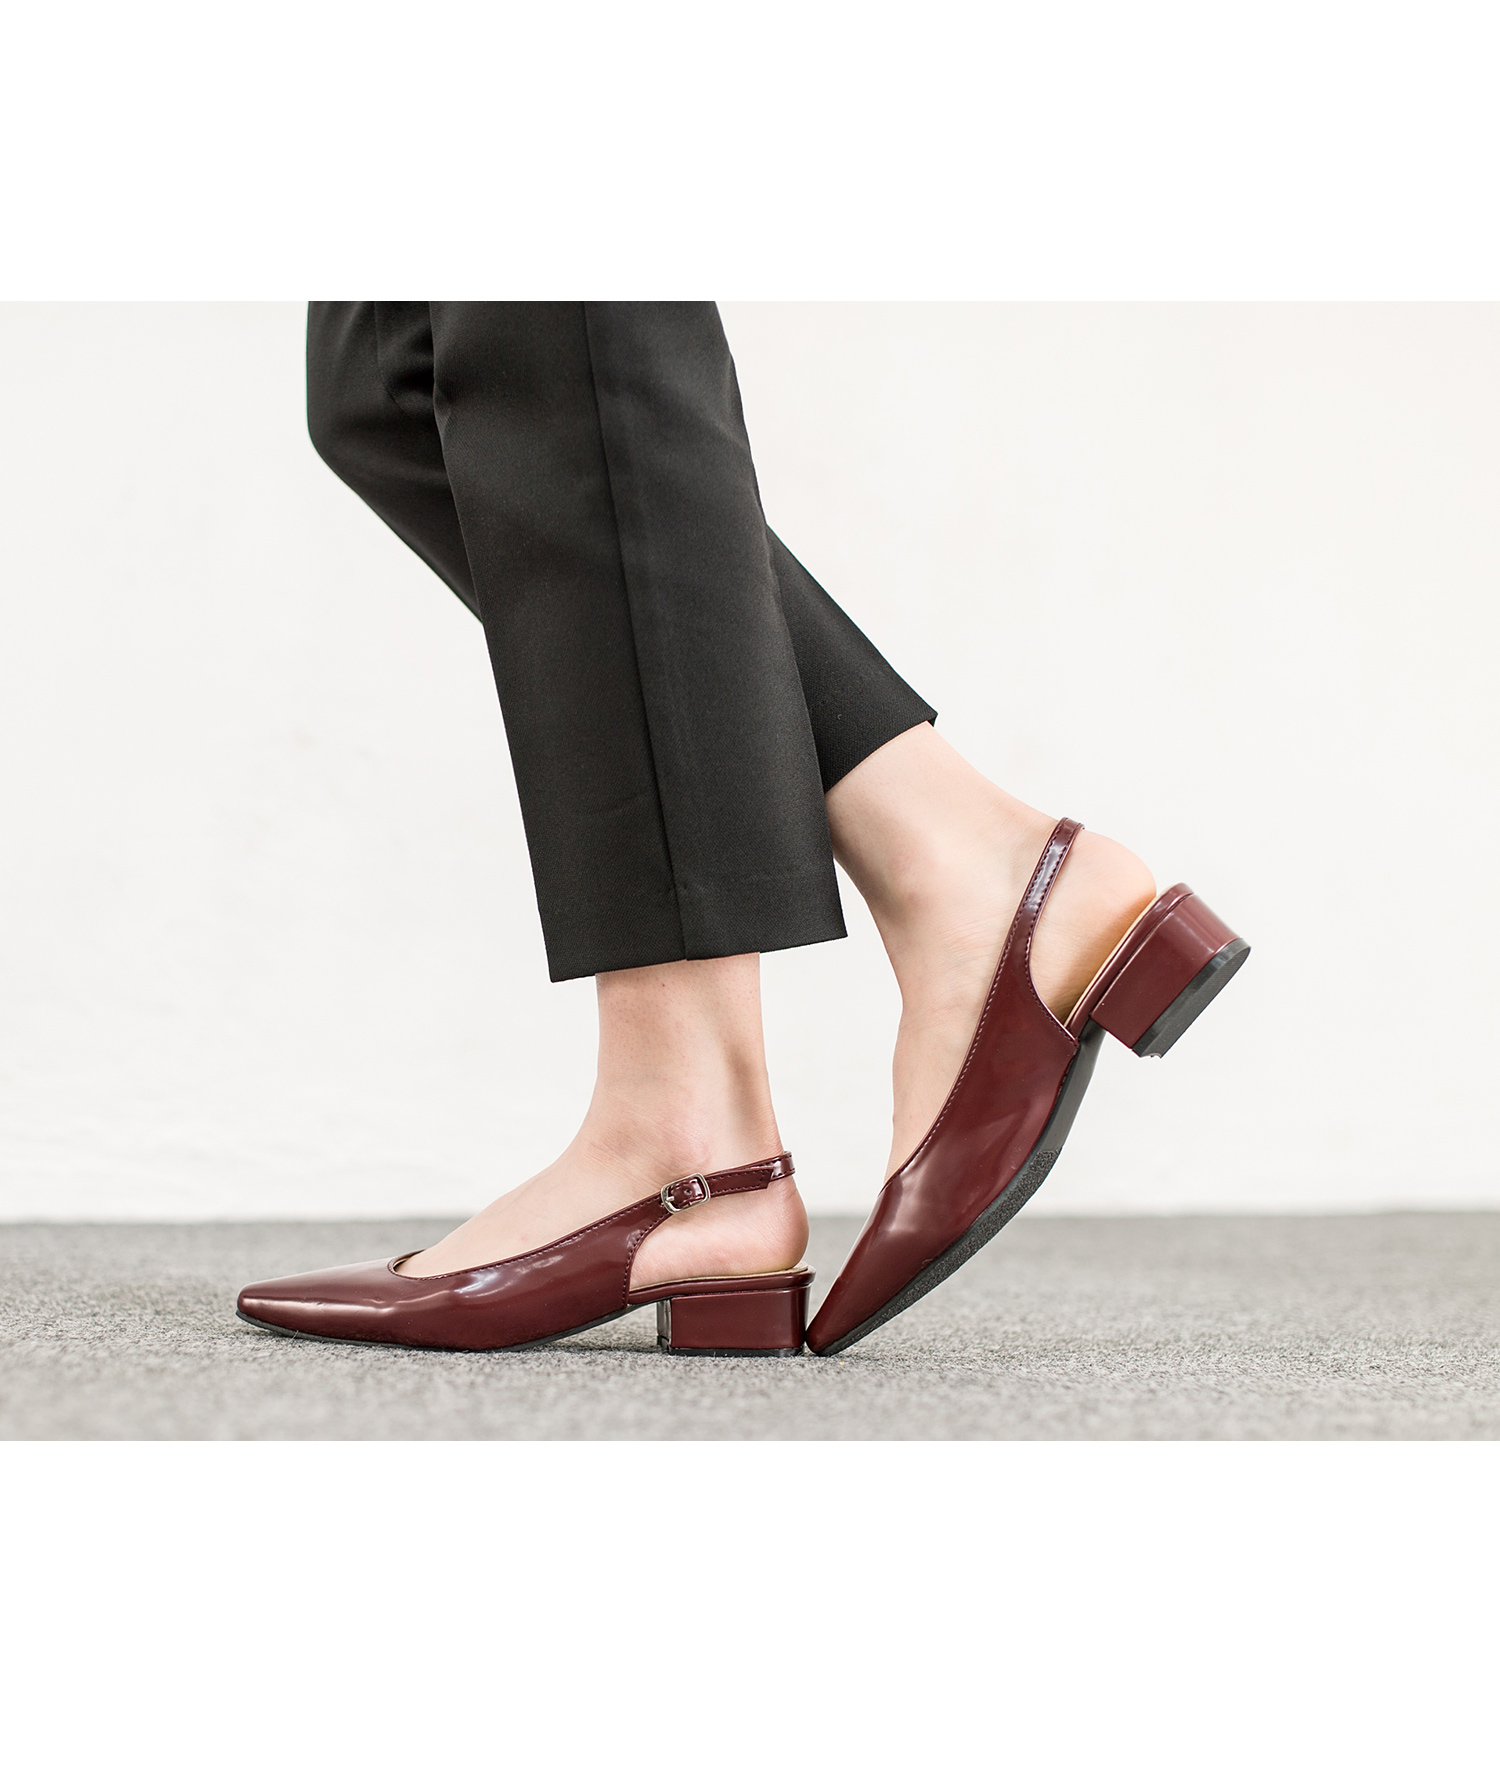 912cacc65d21b AnnaKastle Womens Pointy Toe Slingback Low Heel Pumps Wine